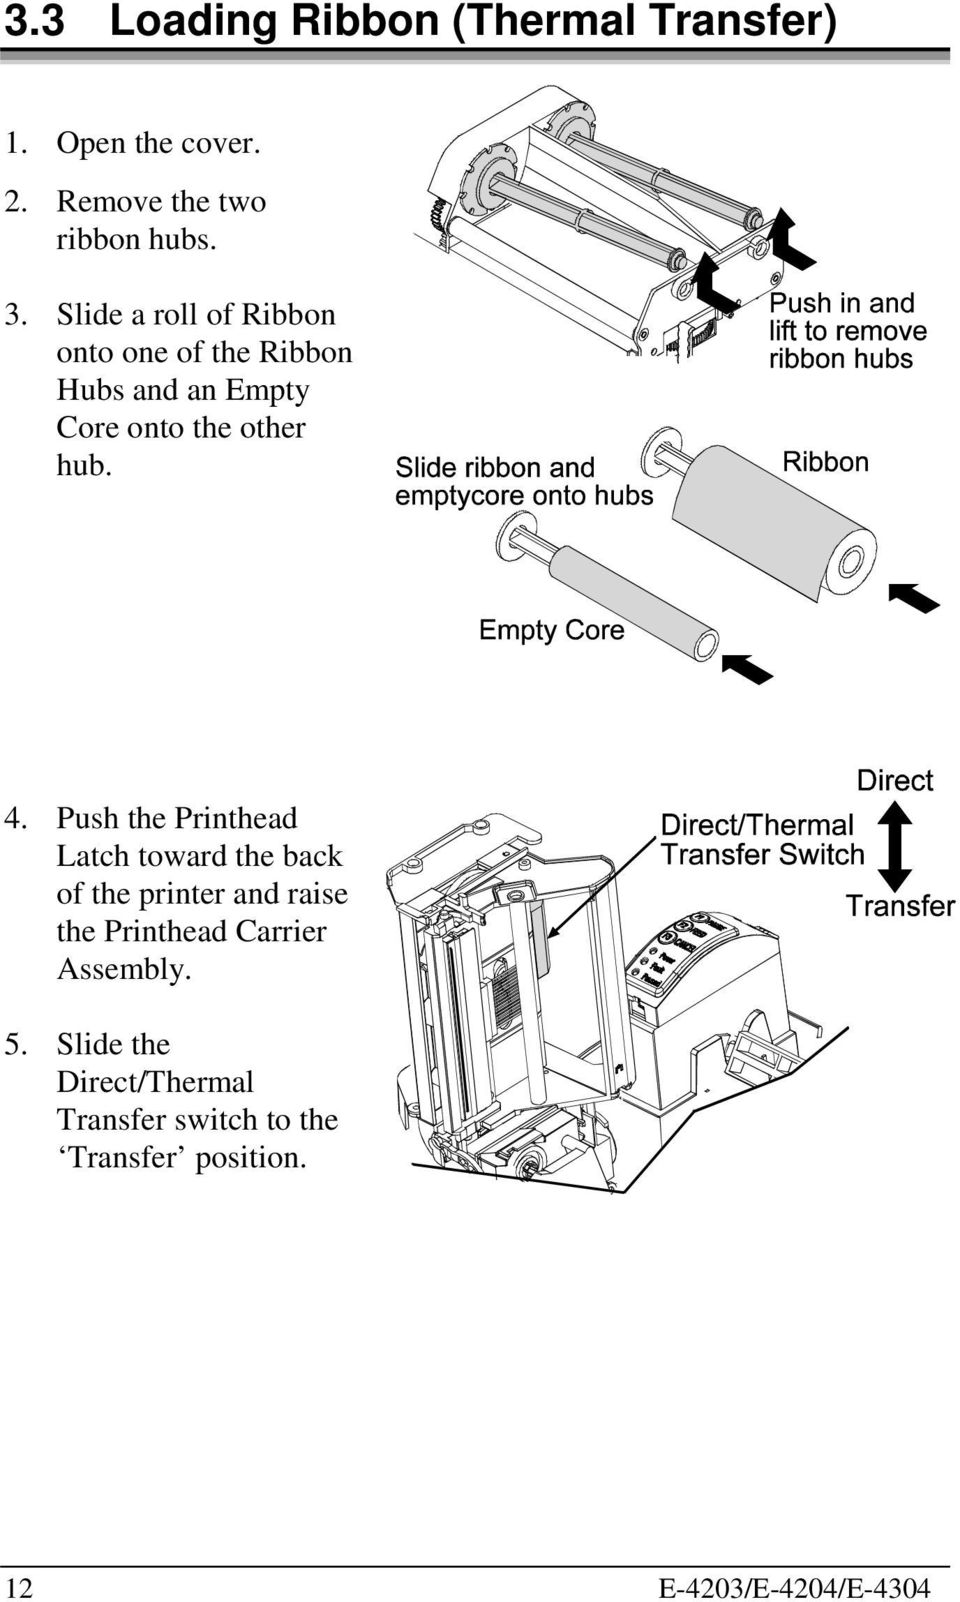 Push the Printhead Latch toward the back of the printer and raise the Printhead Carrier